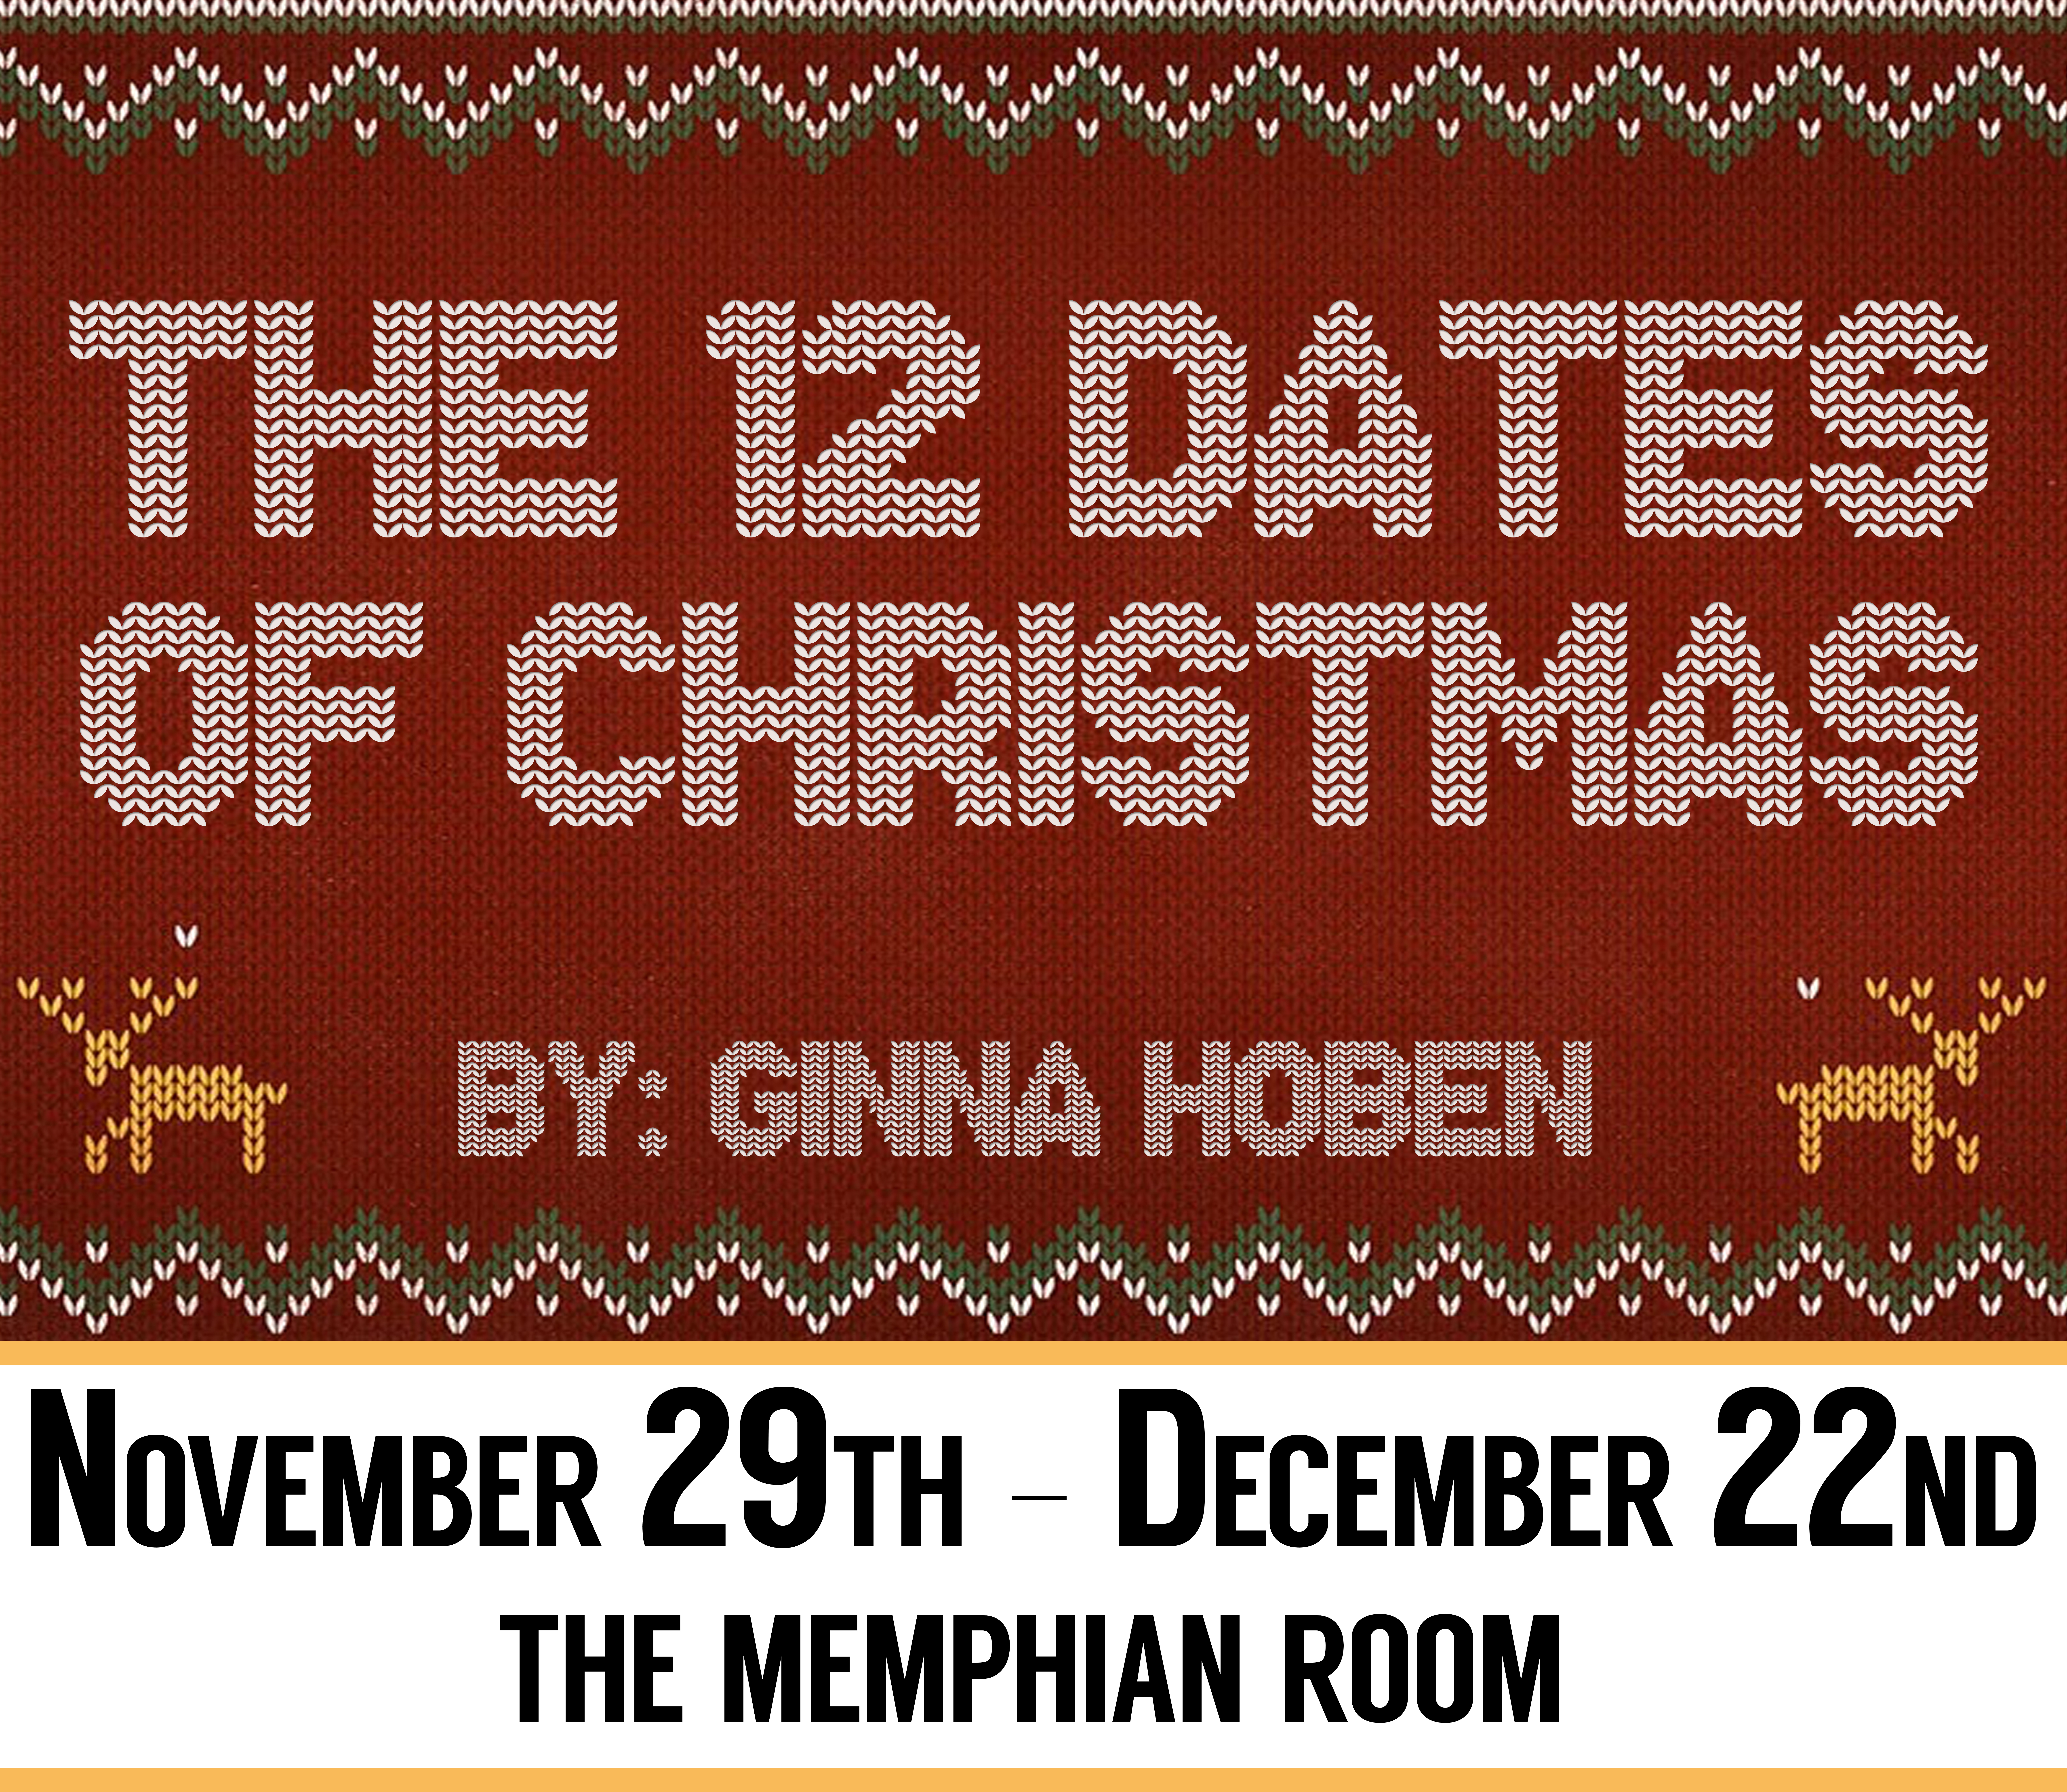 12 Dates Of Christmas.The Twelve Dates Of Christmas Playhouse On The Square